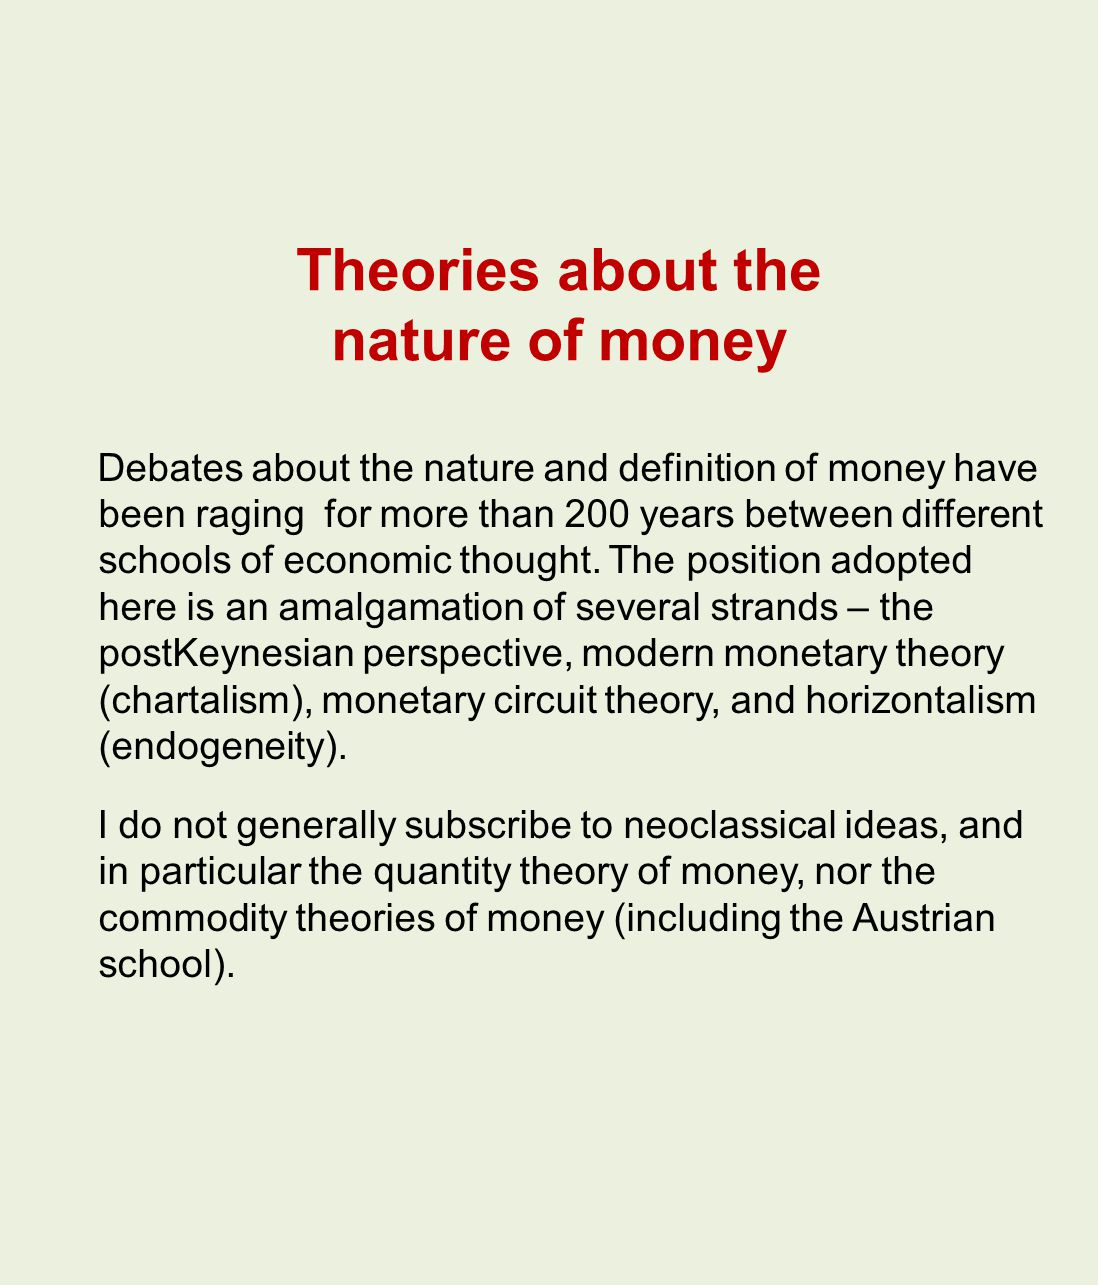 Theories about the nature of money Debates about the nature and definition of money have been raging for more than 200 years between different schools